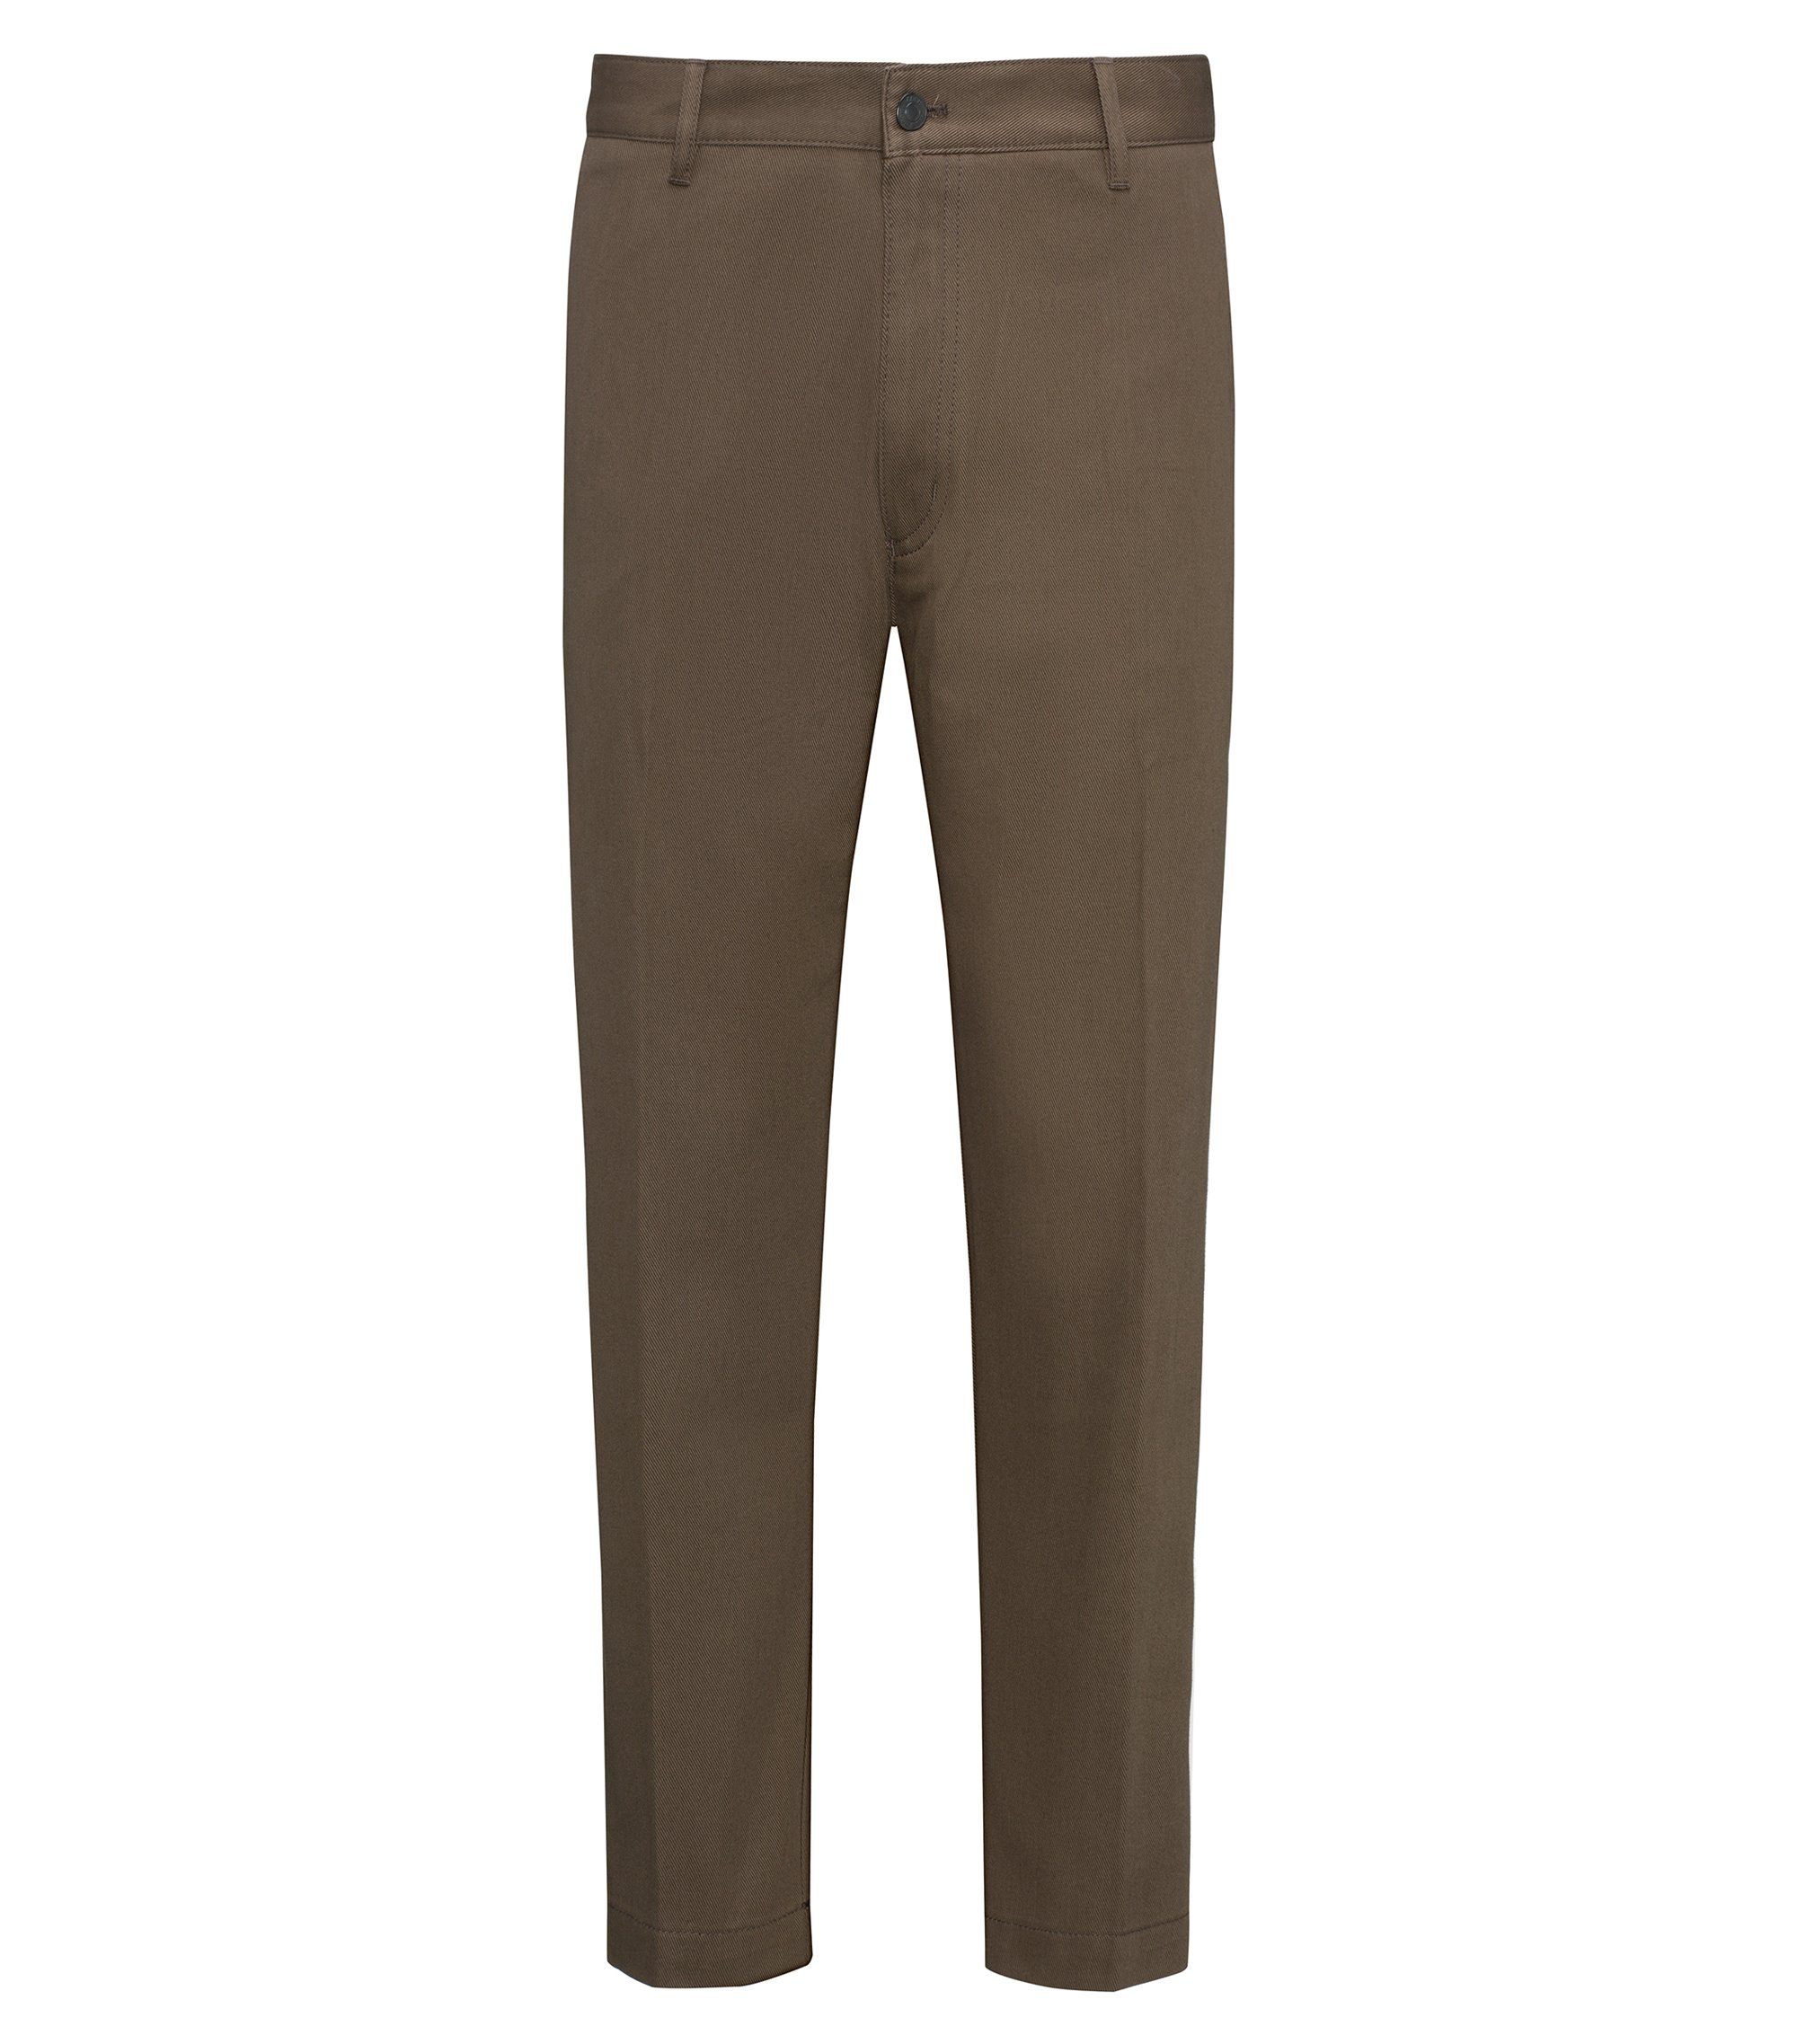 Cargo Regular Fit en twill de coton, Marron